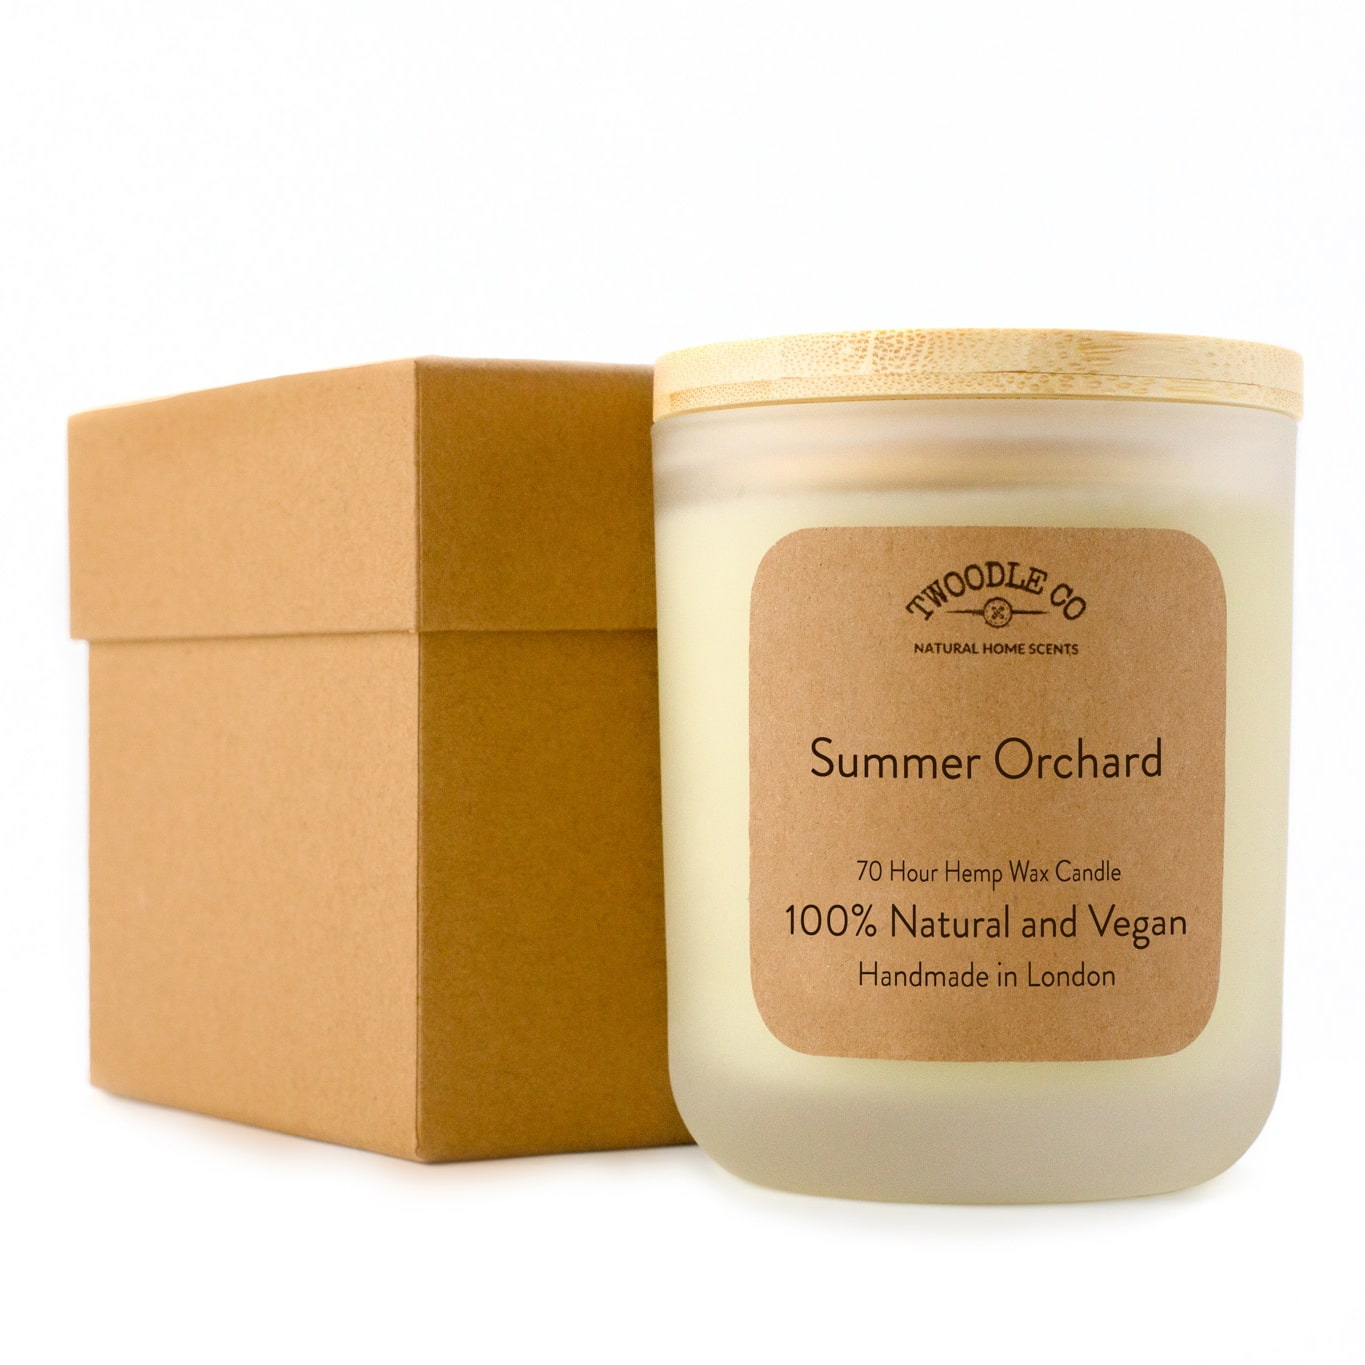 Summer Orchard Large Candle by Twoodle Co Natural Home Scents